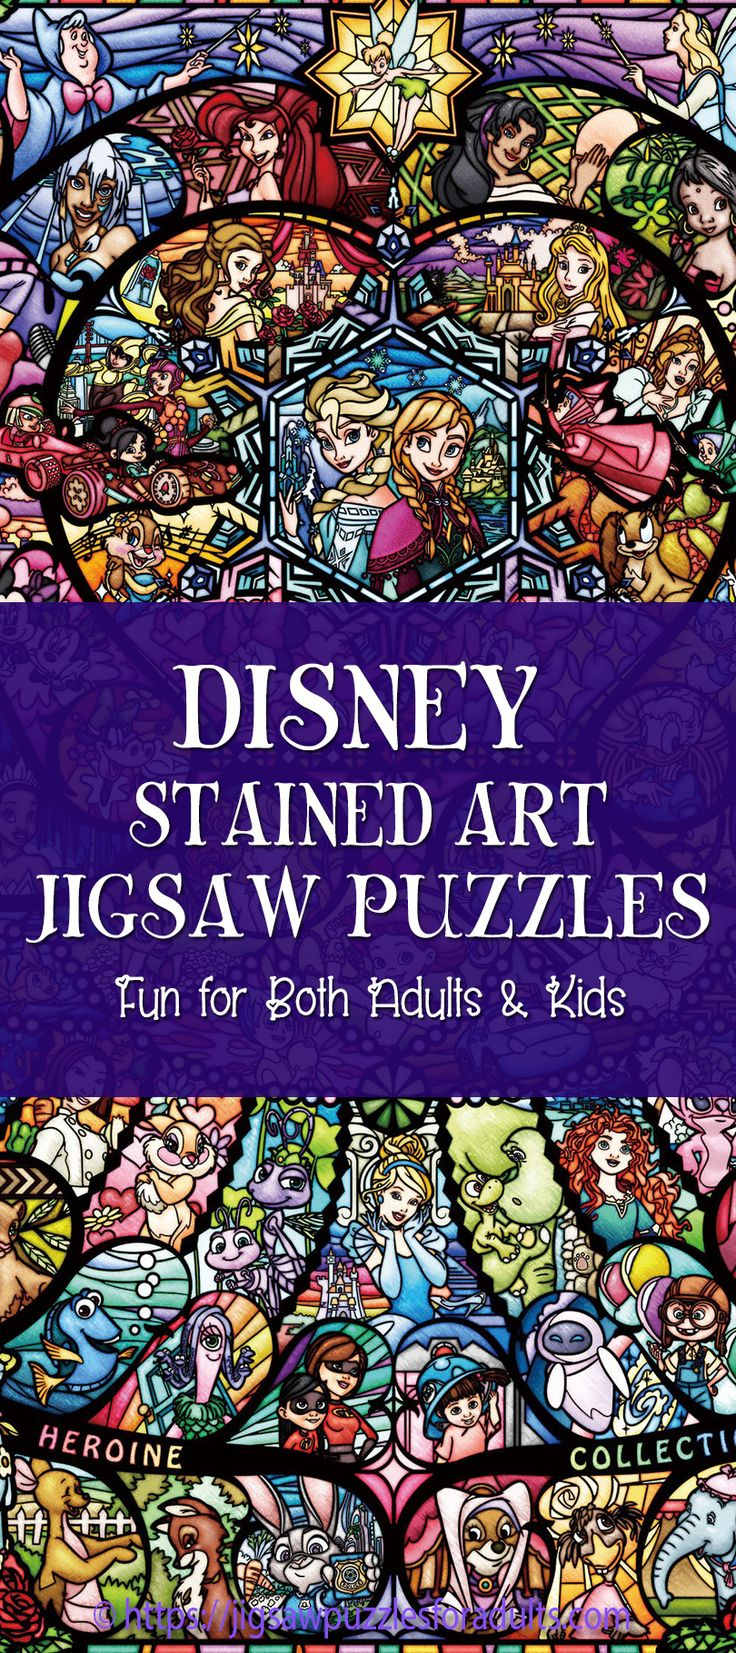 Looking for a special Disney stained art jigsaw puzzle? You'll find plenty of stunning stained art jigsaw puzzles of your most memorable Disney characters. These Tenyo Disney puzzles make fantastic gifts for avid jigsaw puzzlers or for anyone who loves Disney art work.